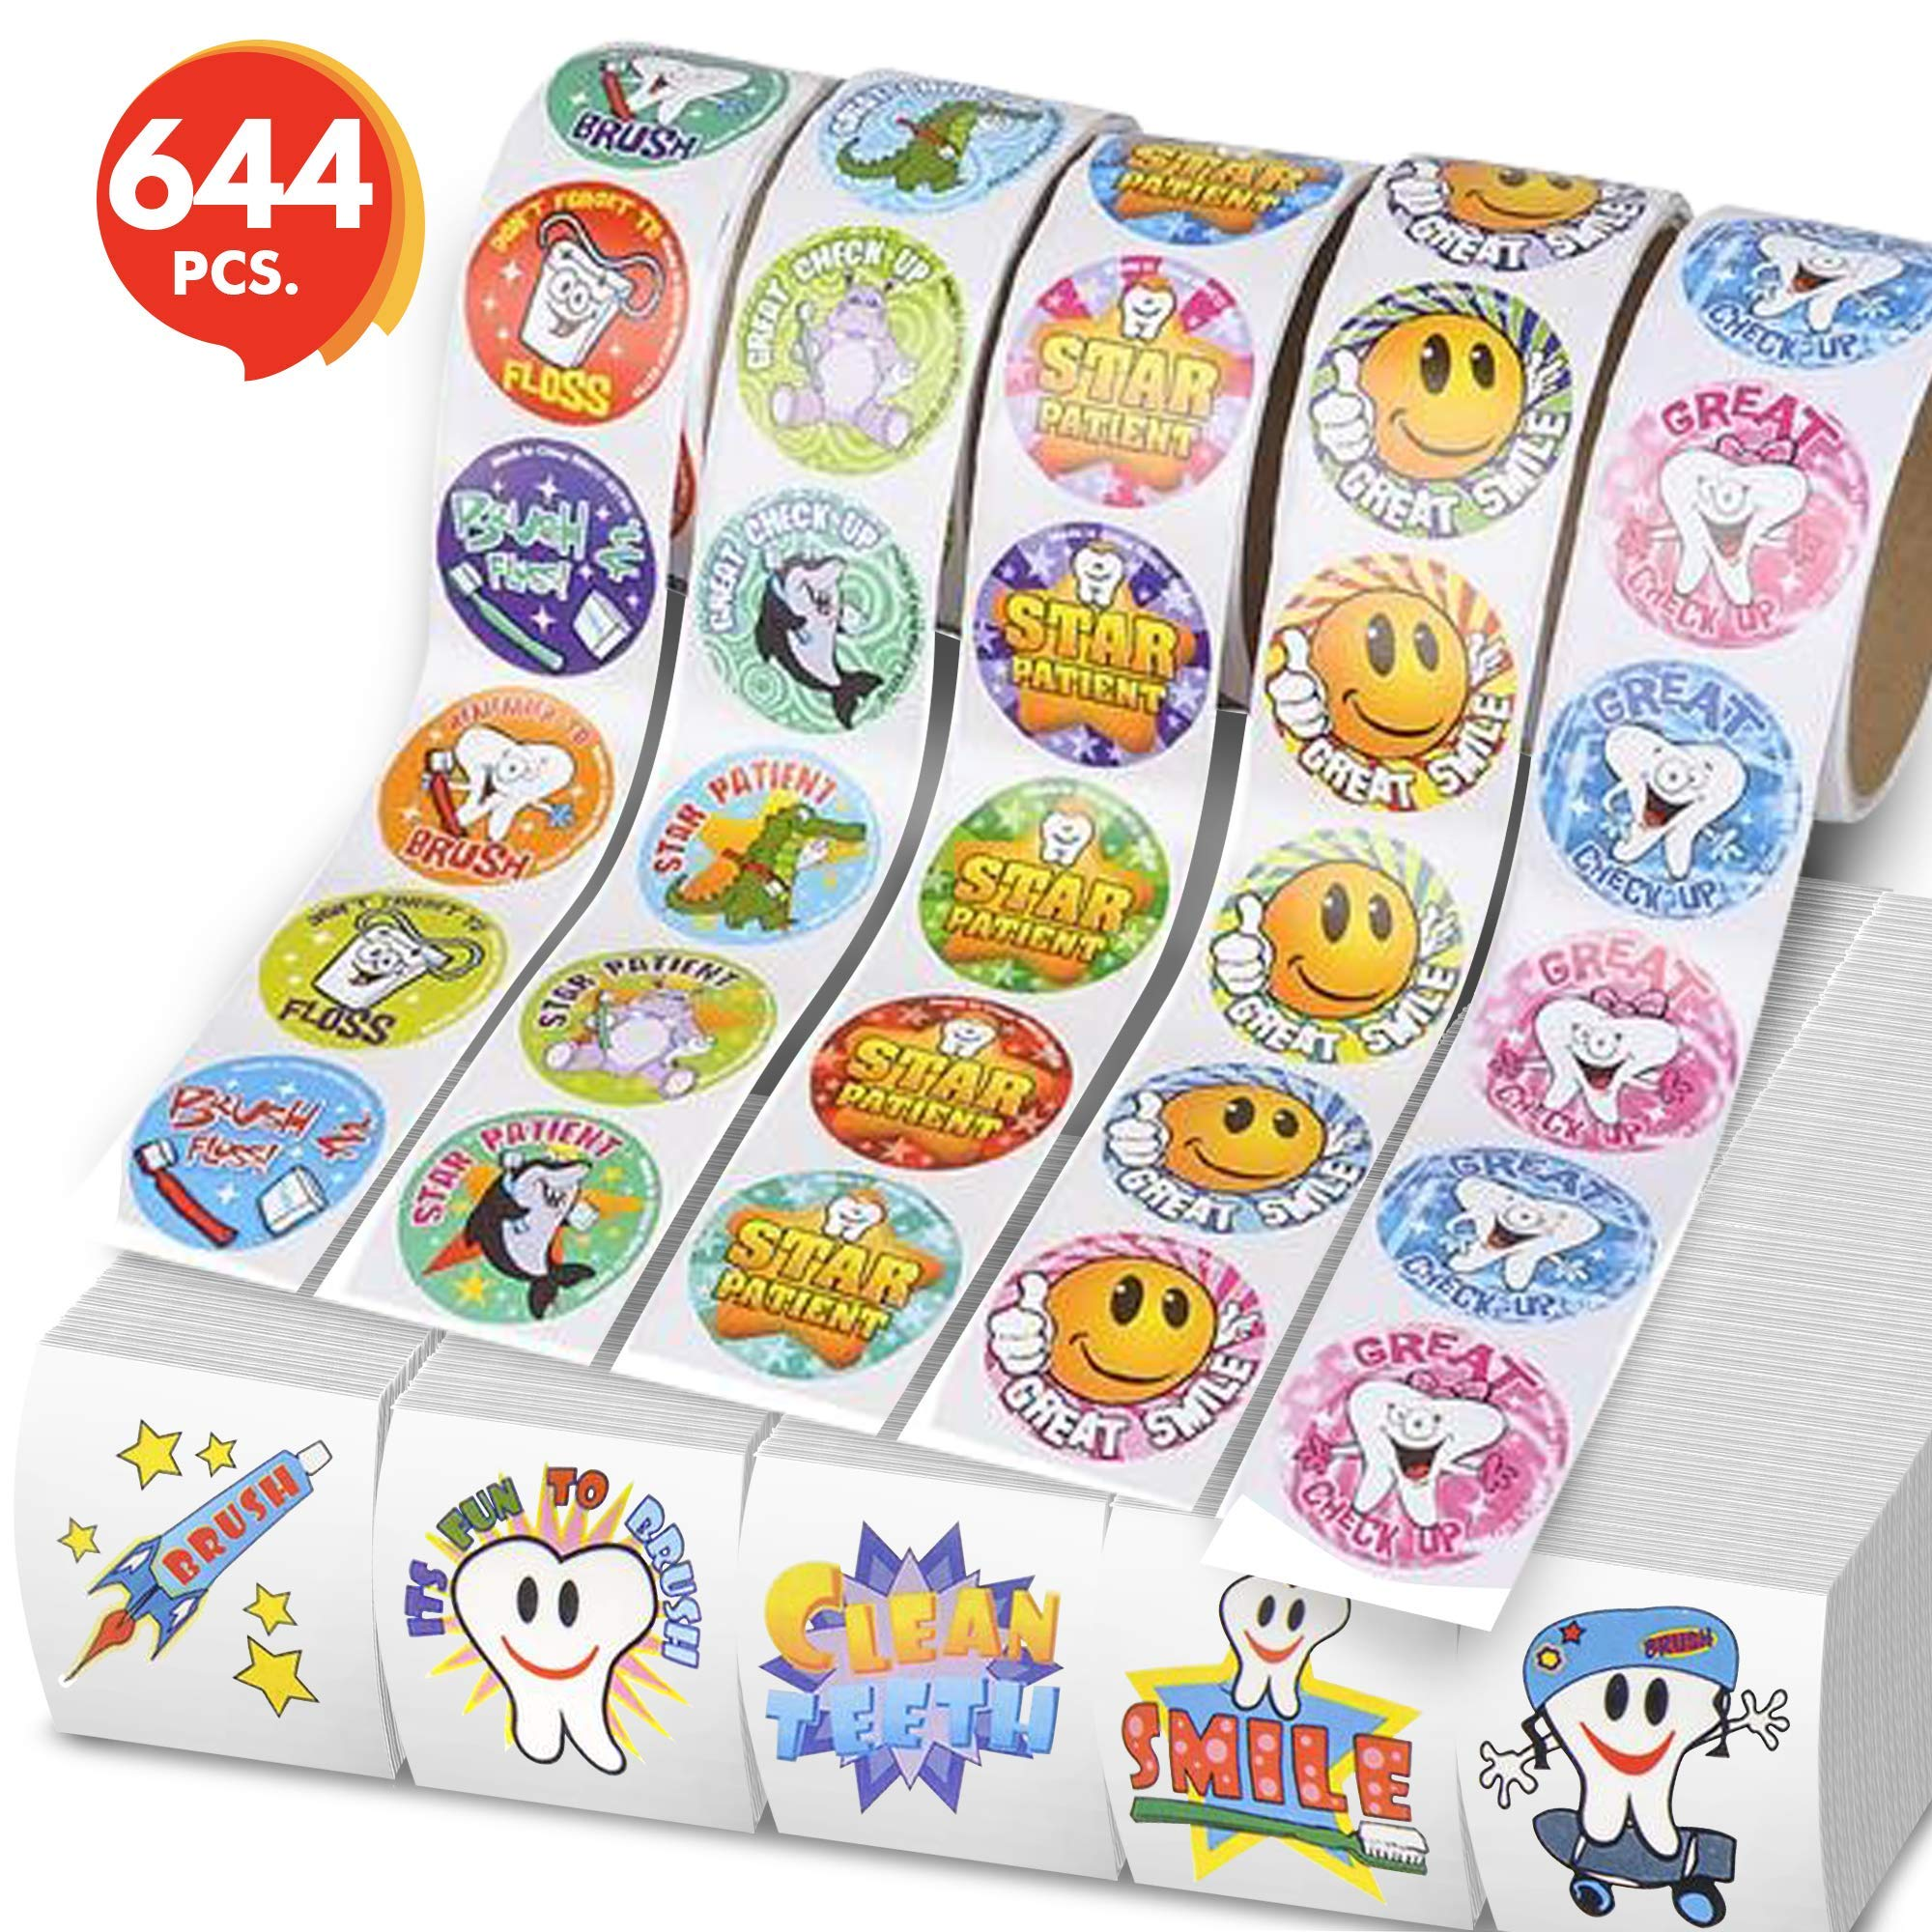 ArtCreativity Dental Stickers and Temporary Tattoos Set for Kids by Set Includes 500 Stickers and 144 Temporary Tattoos   Reward Stickers  Great Gift Idea for Boys or Girls, Fun Craft Tools for Kids